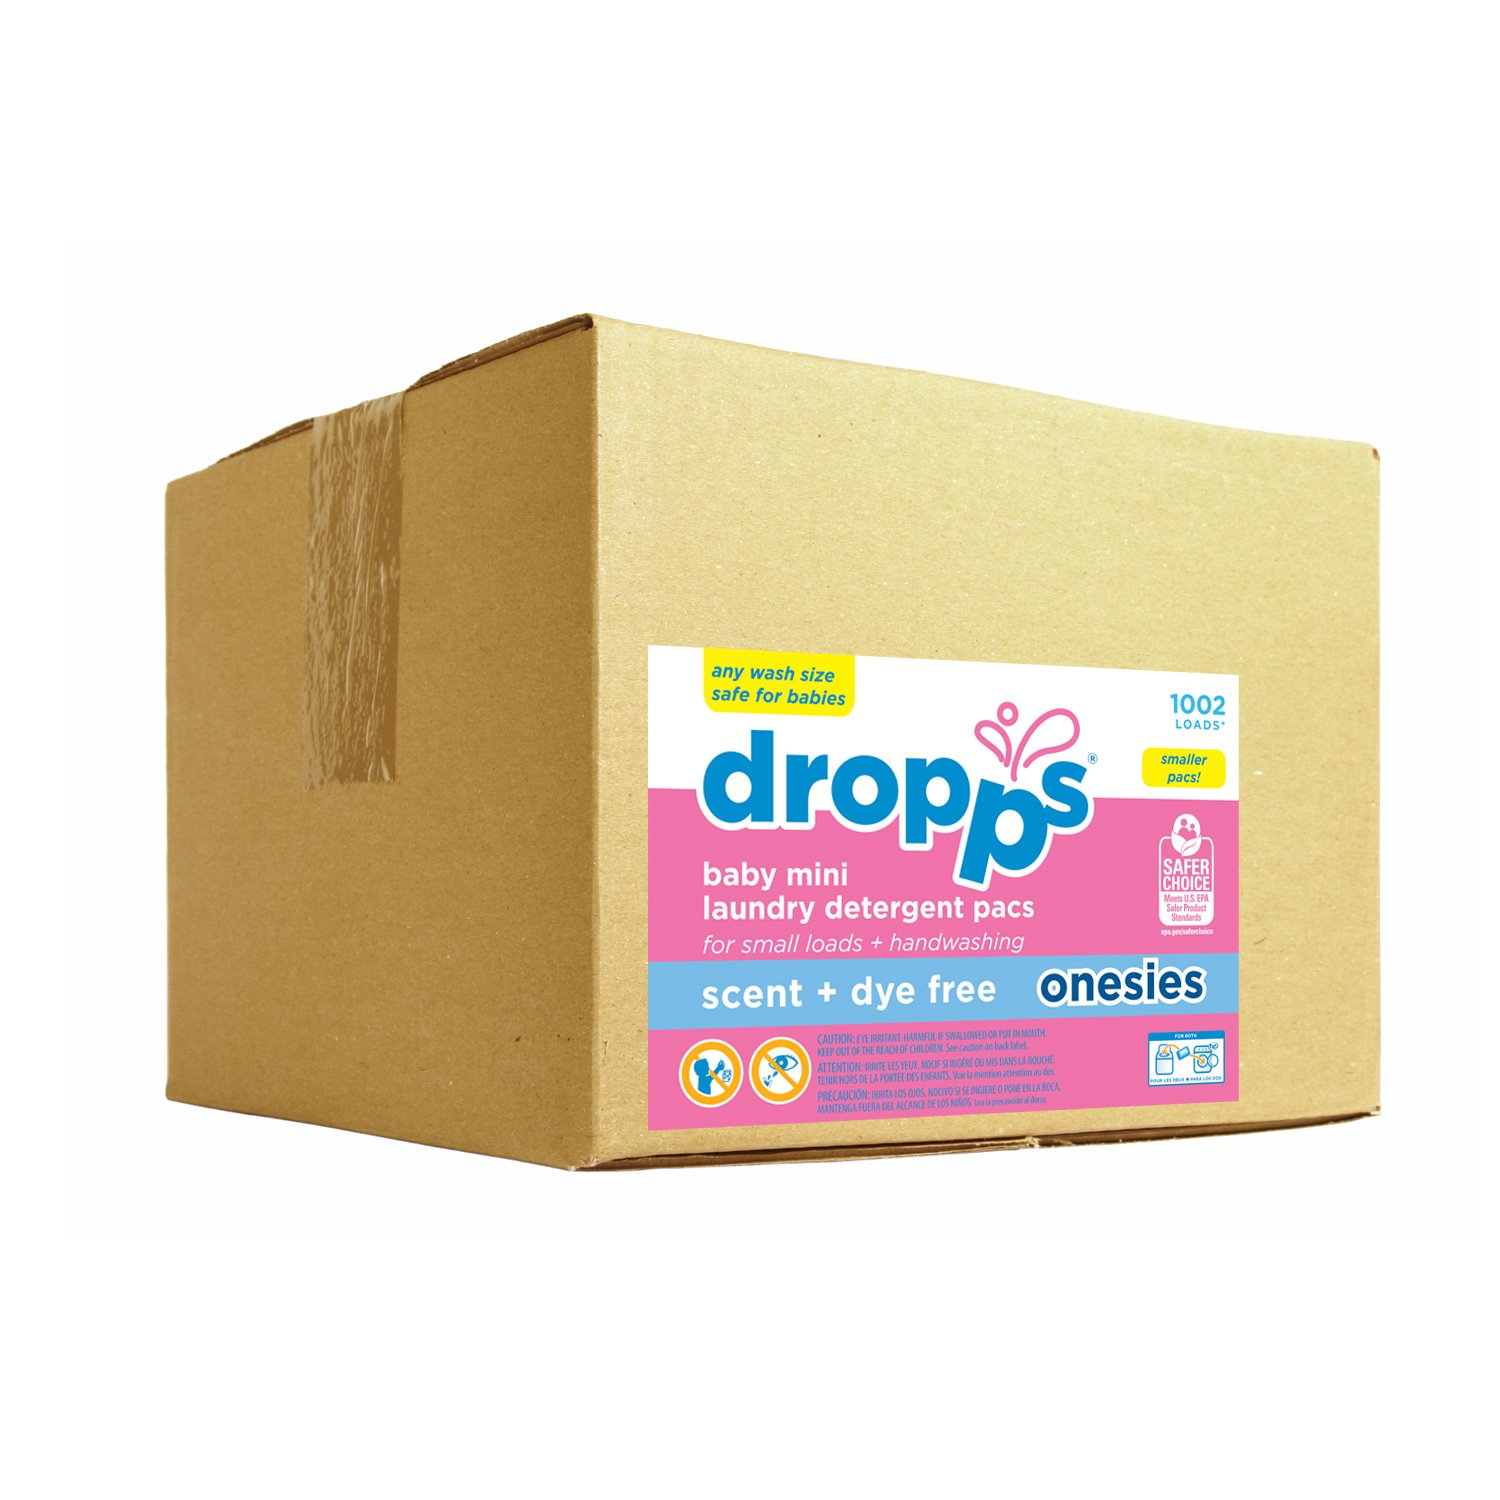 Dropps HE Baby Hand /Machine Wash Onesie Laundry Detergent Pacs, Scent Dye and Enzyme Free, Bulk Box, 1002 Count